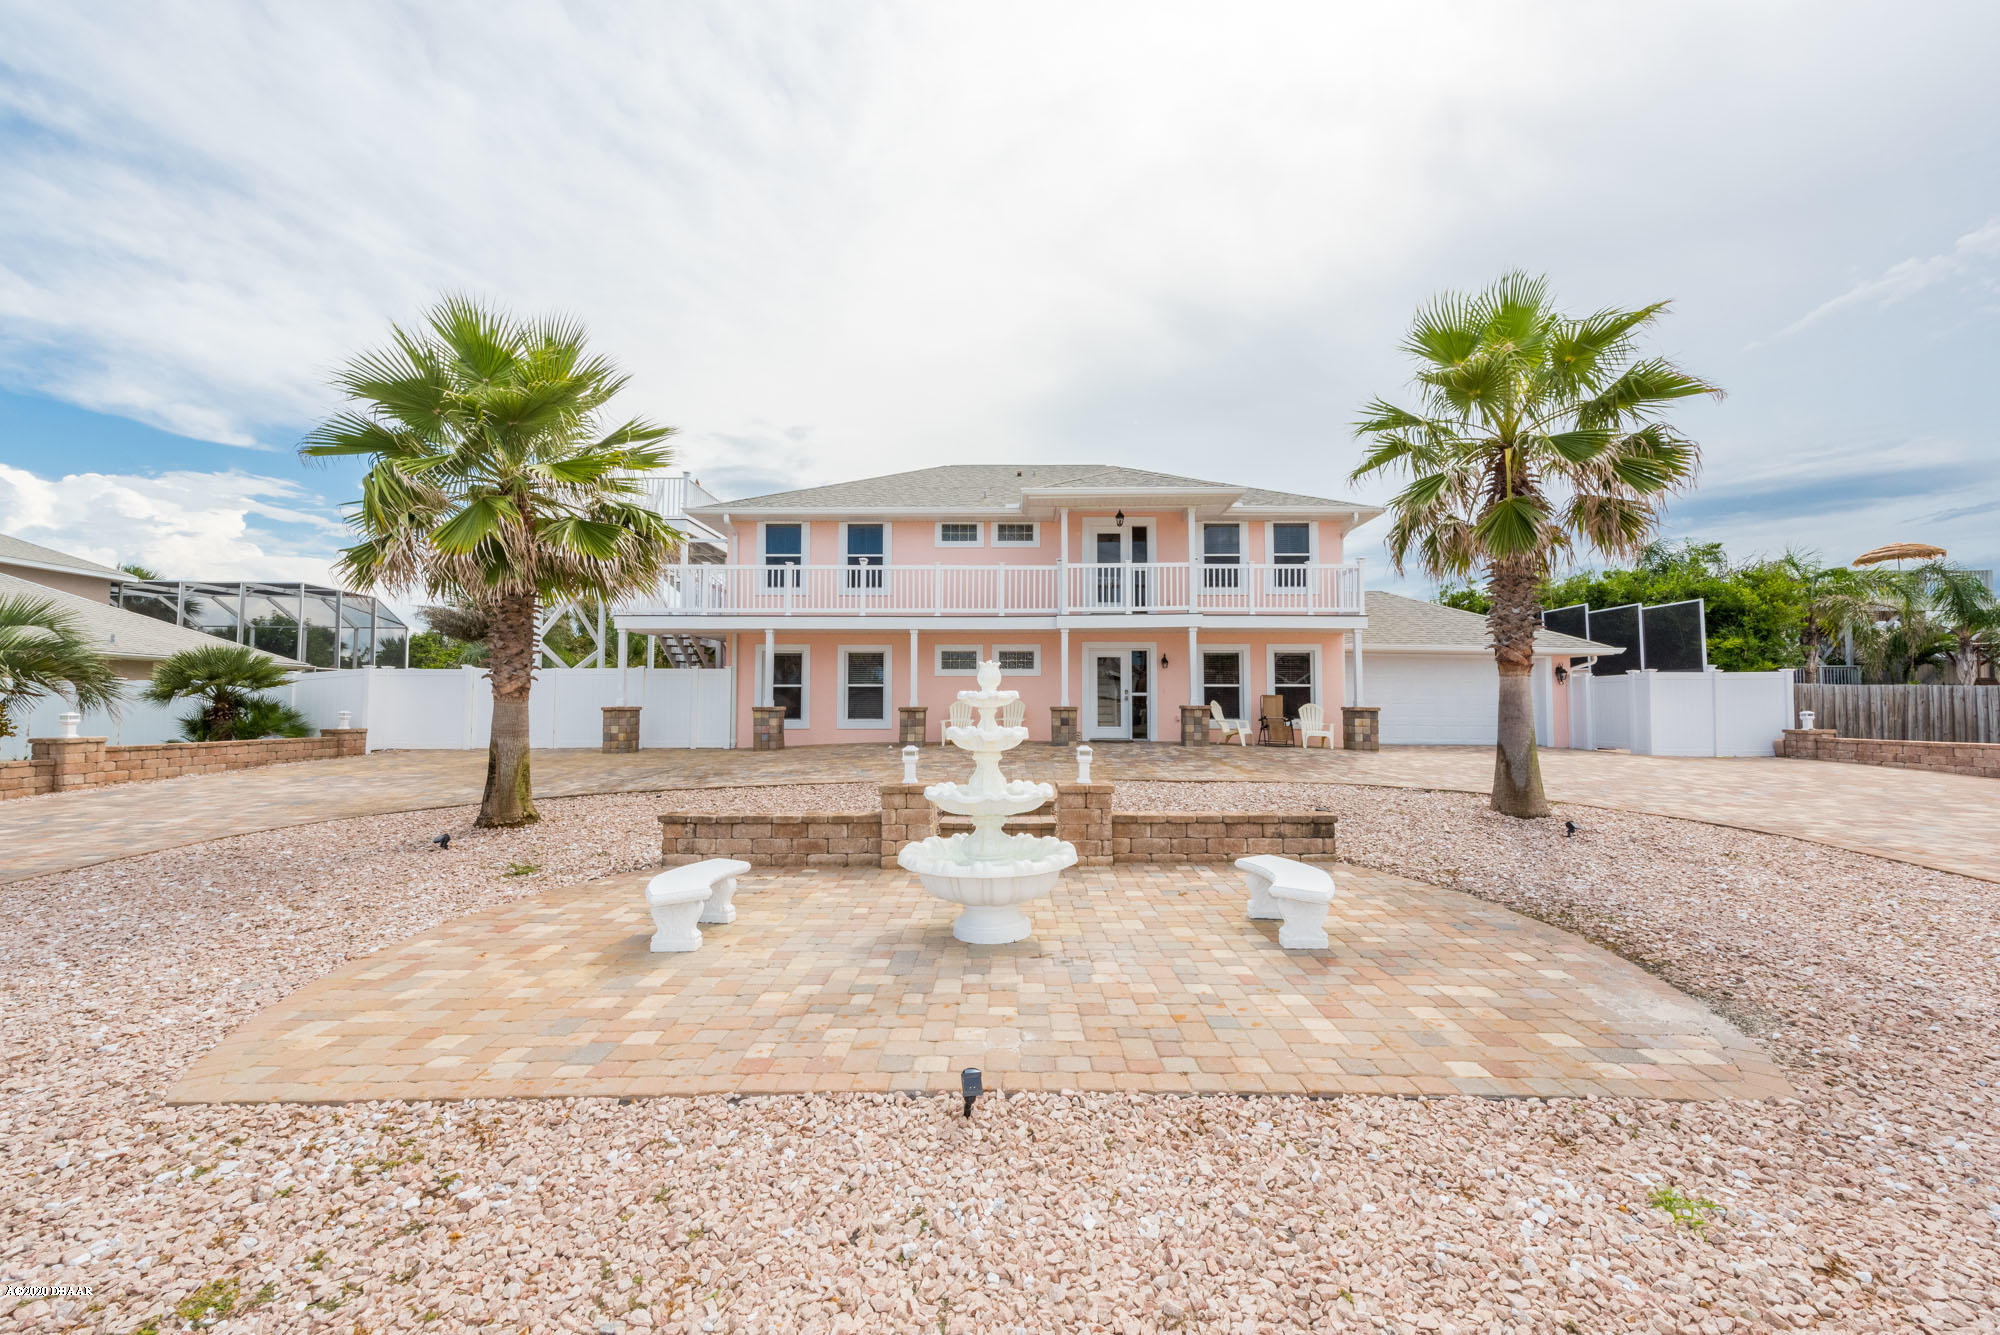 One of Ponce Inlet 4 Bedroom Homes for Sale at 4290 S Atlantic Avenue